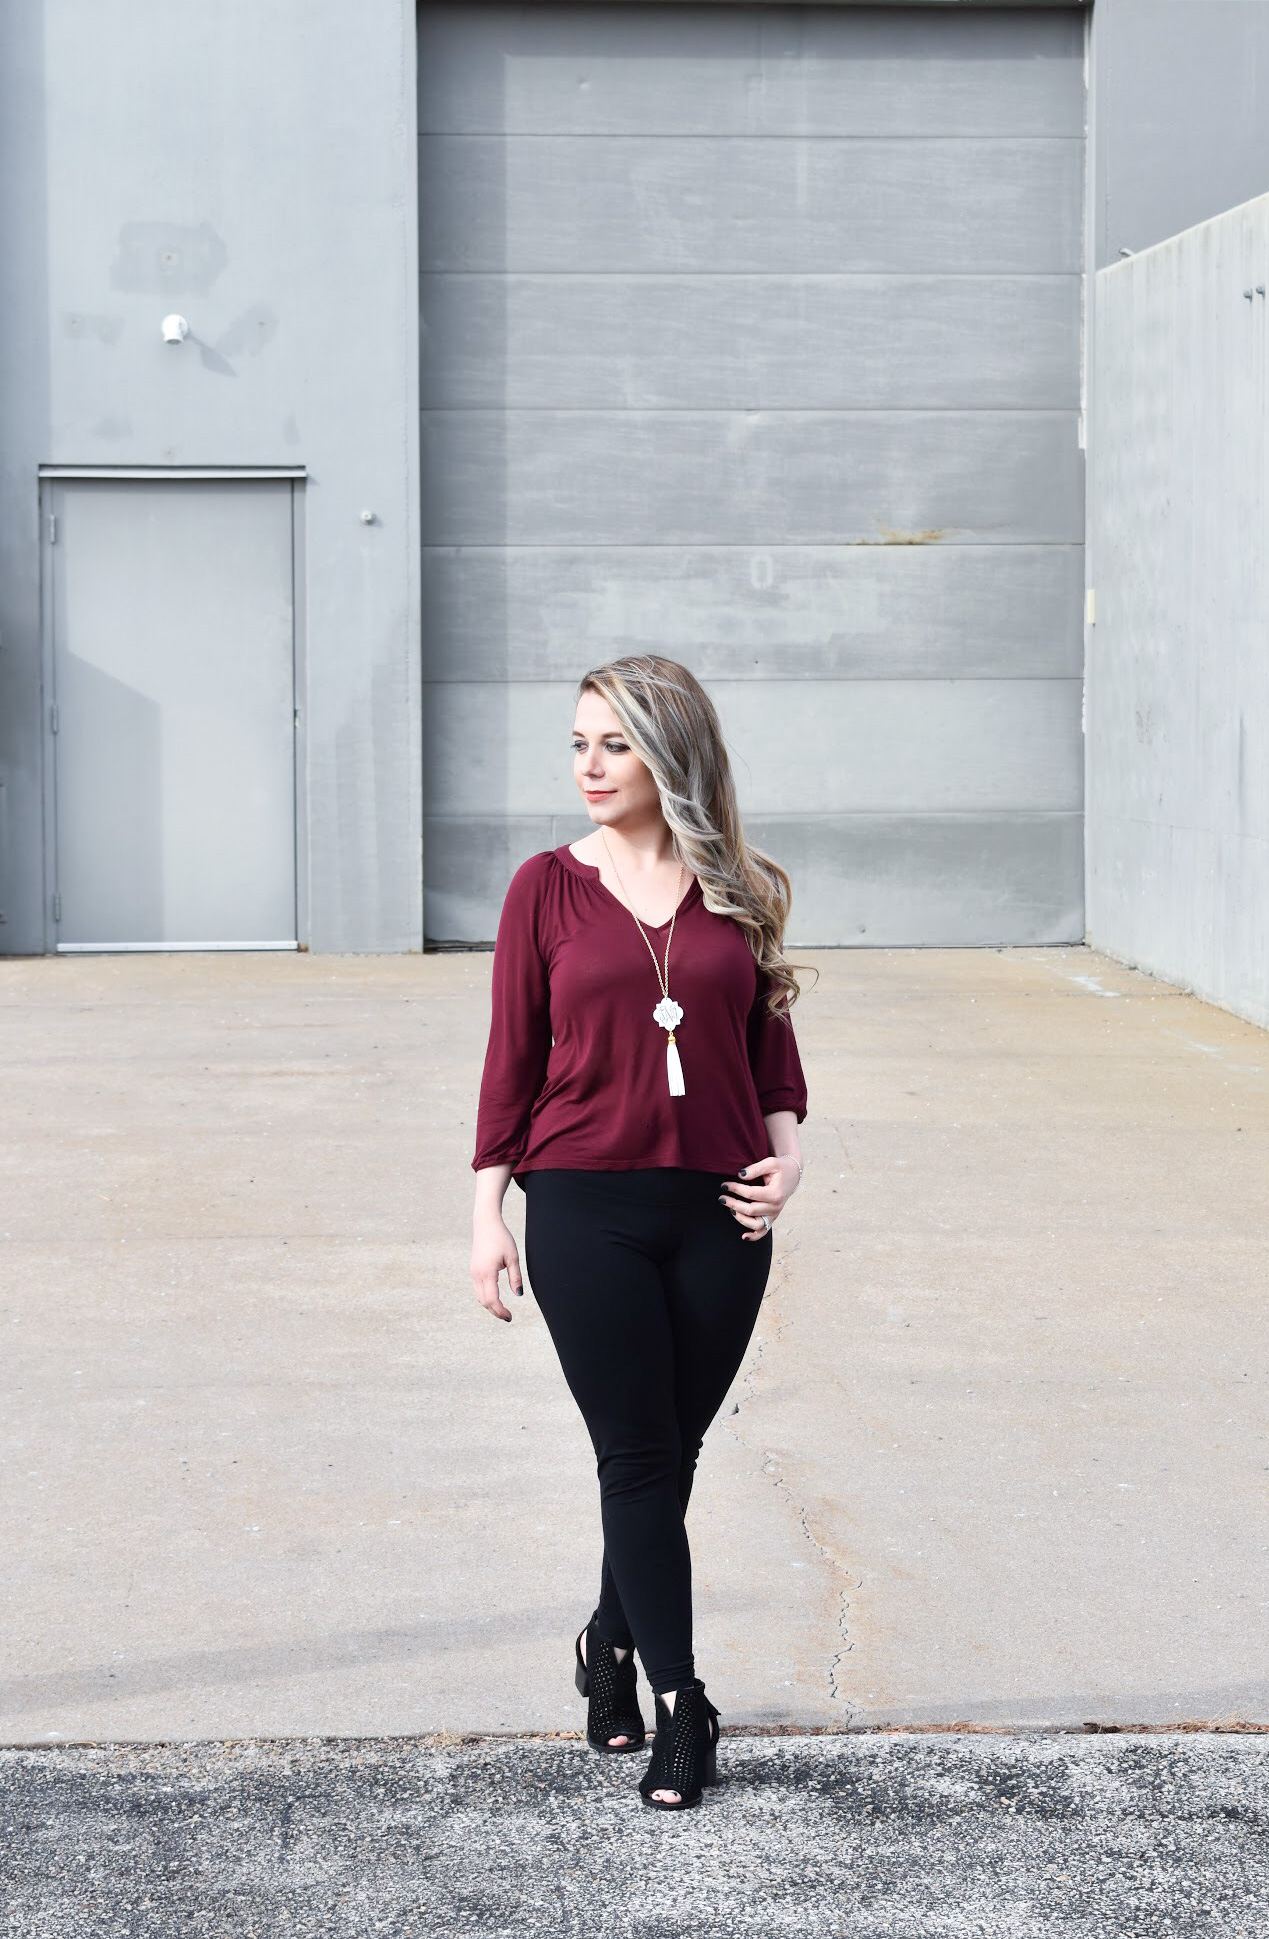 Dress Up Leggings with Ankle Boots. One of my favorite outfit ideas for leggings is to dress the leggings up with some stylish ankle boots! Take leggings from day to night with this easy styling trick! Here, I styled black leggings with black ankle boots for a sleek monochromatic look.